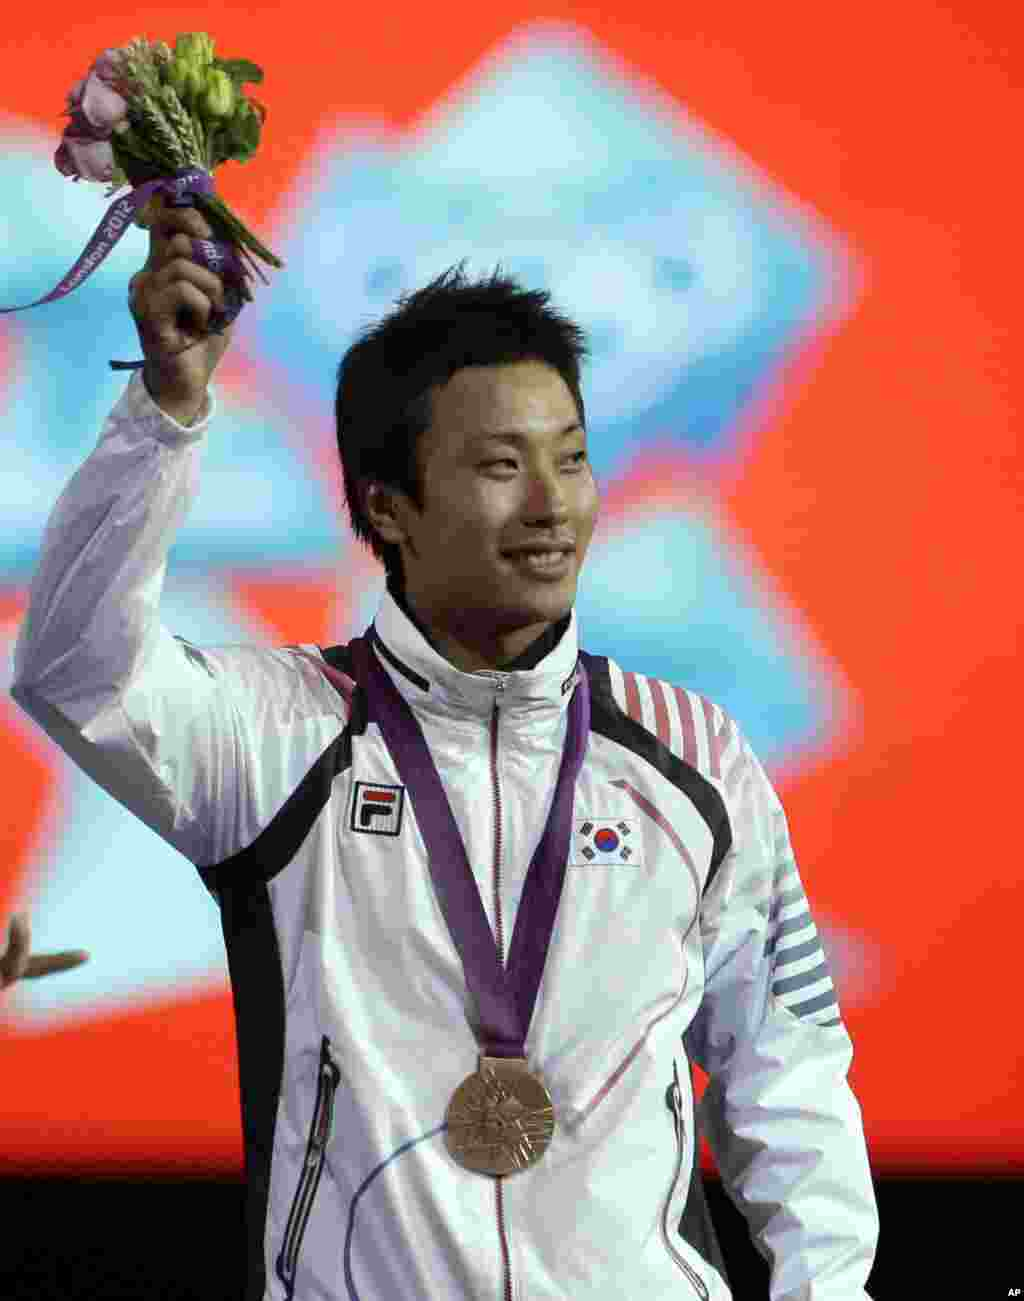 Bronze medalist Choi Byungchul of South Korea, waves to the crowd during the medals ceremony after the men's individual foil fencing competition at the 2012 Summer Olympics, July 31, 2012, in London.